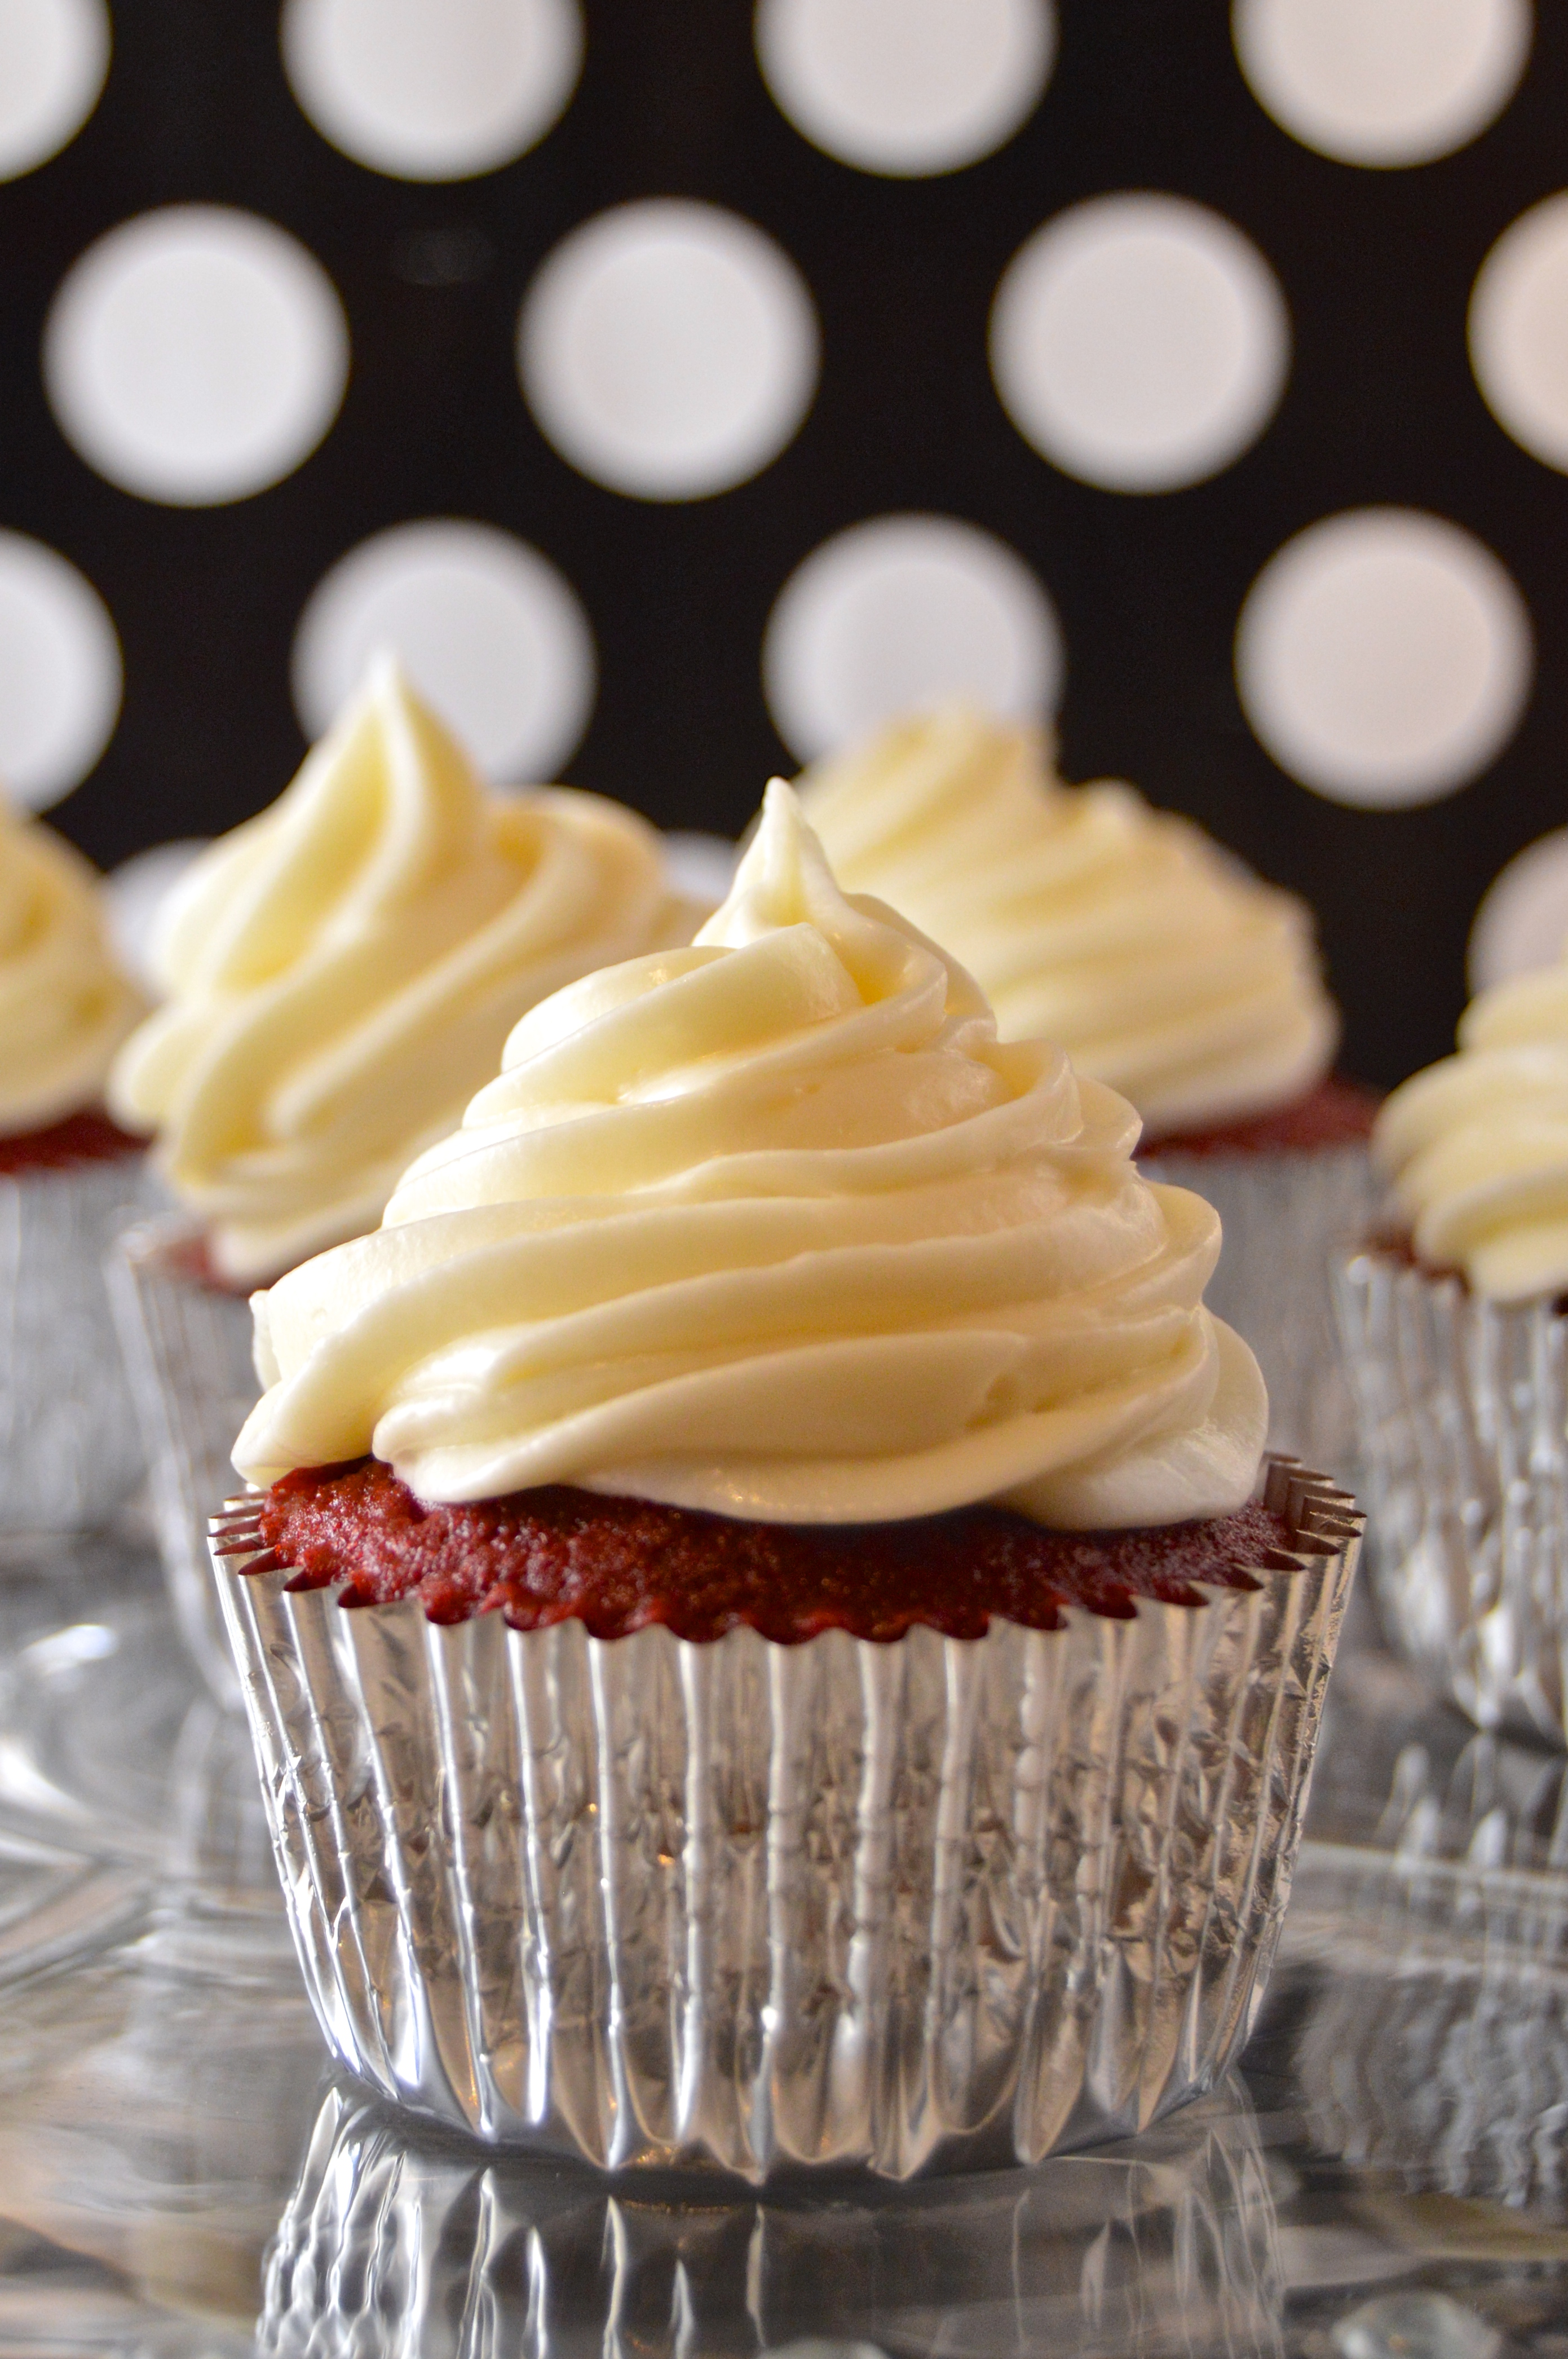 Red Velvet Cupcakes with Homemade Cream Cheese Frosting - Revamperate